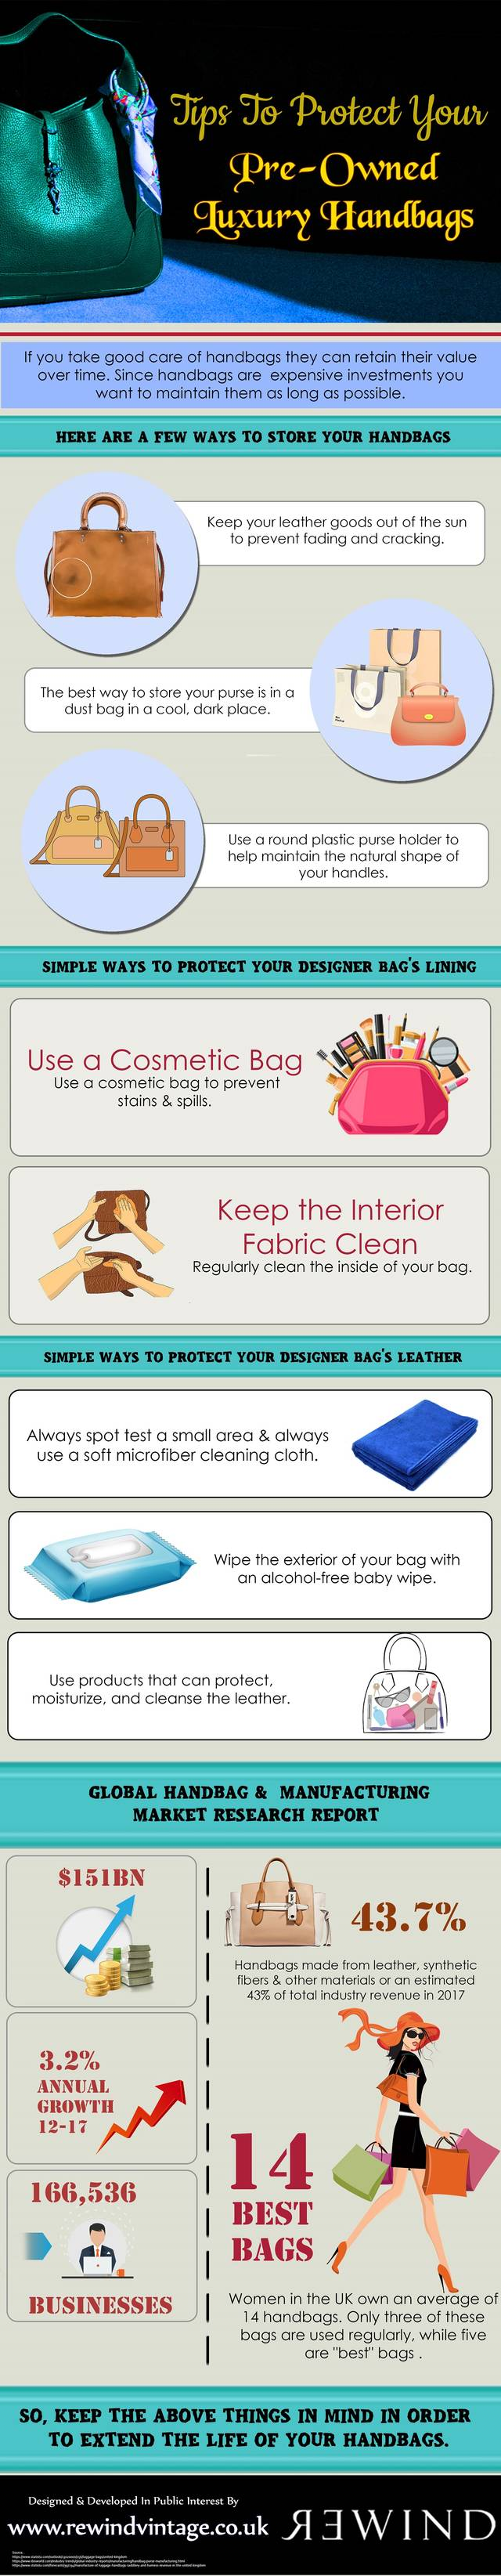 Tips to protect your pre owned luxury handbags